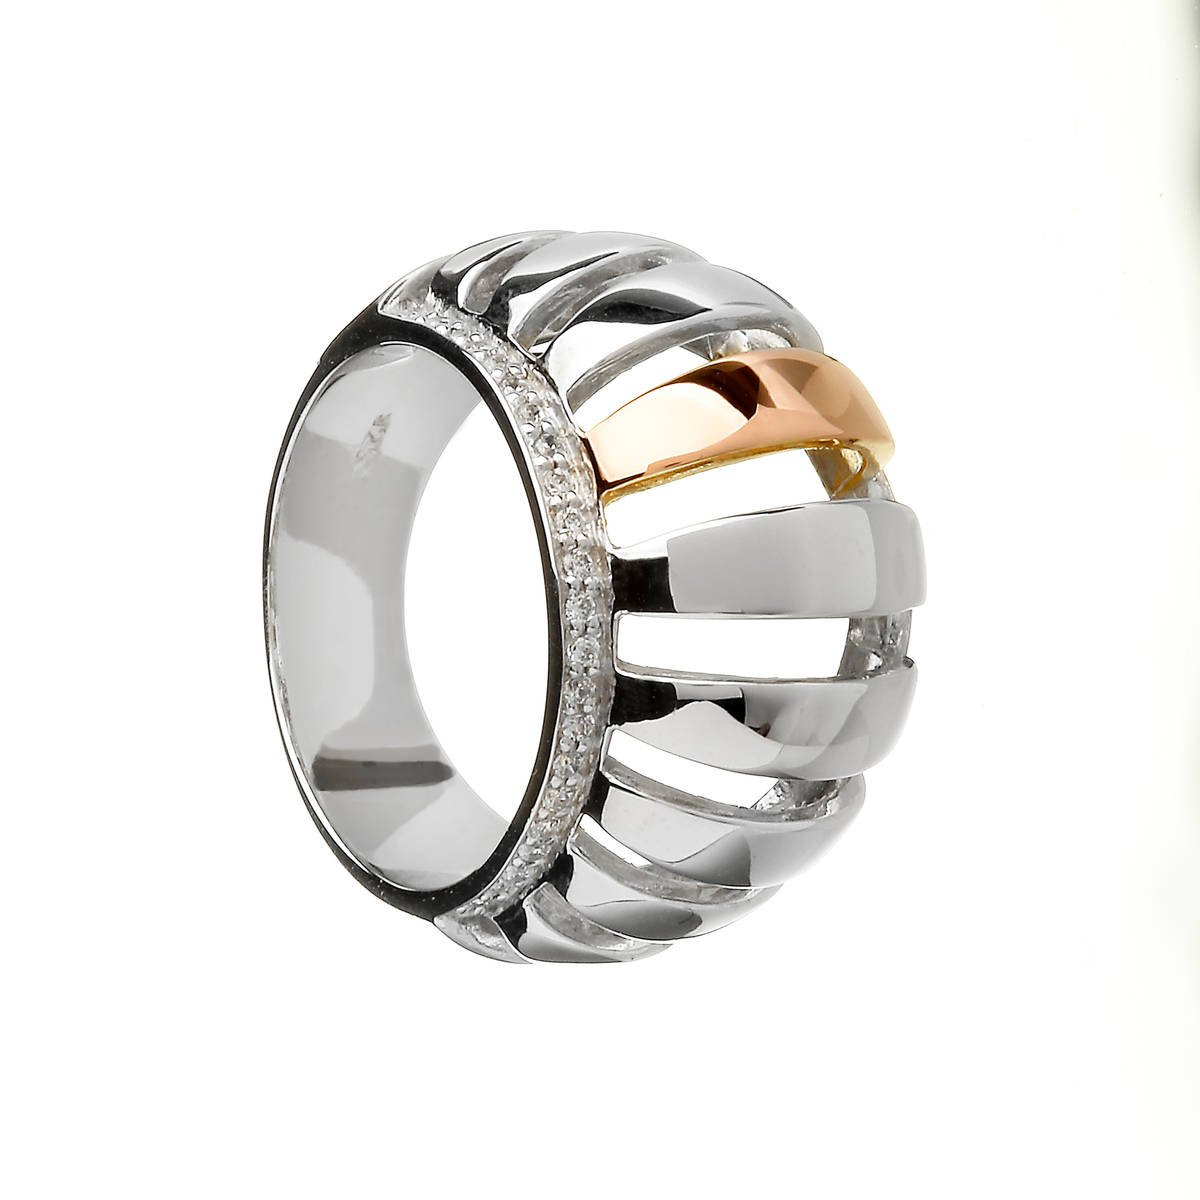 House of Lor silver/rose gold cz set chunky ring centre piece made from rare Irish goldtcck/dipck